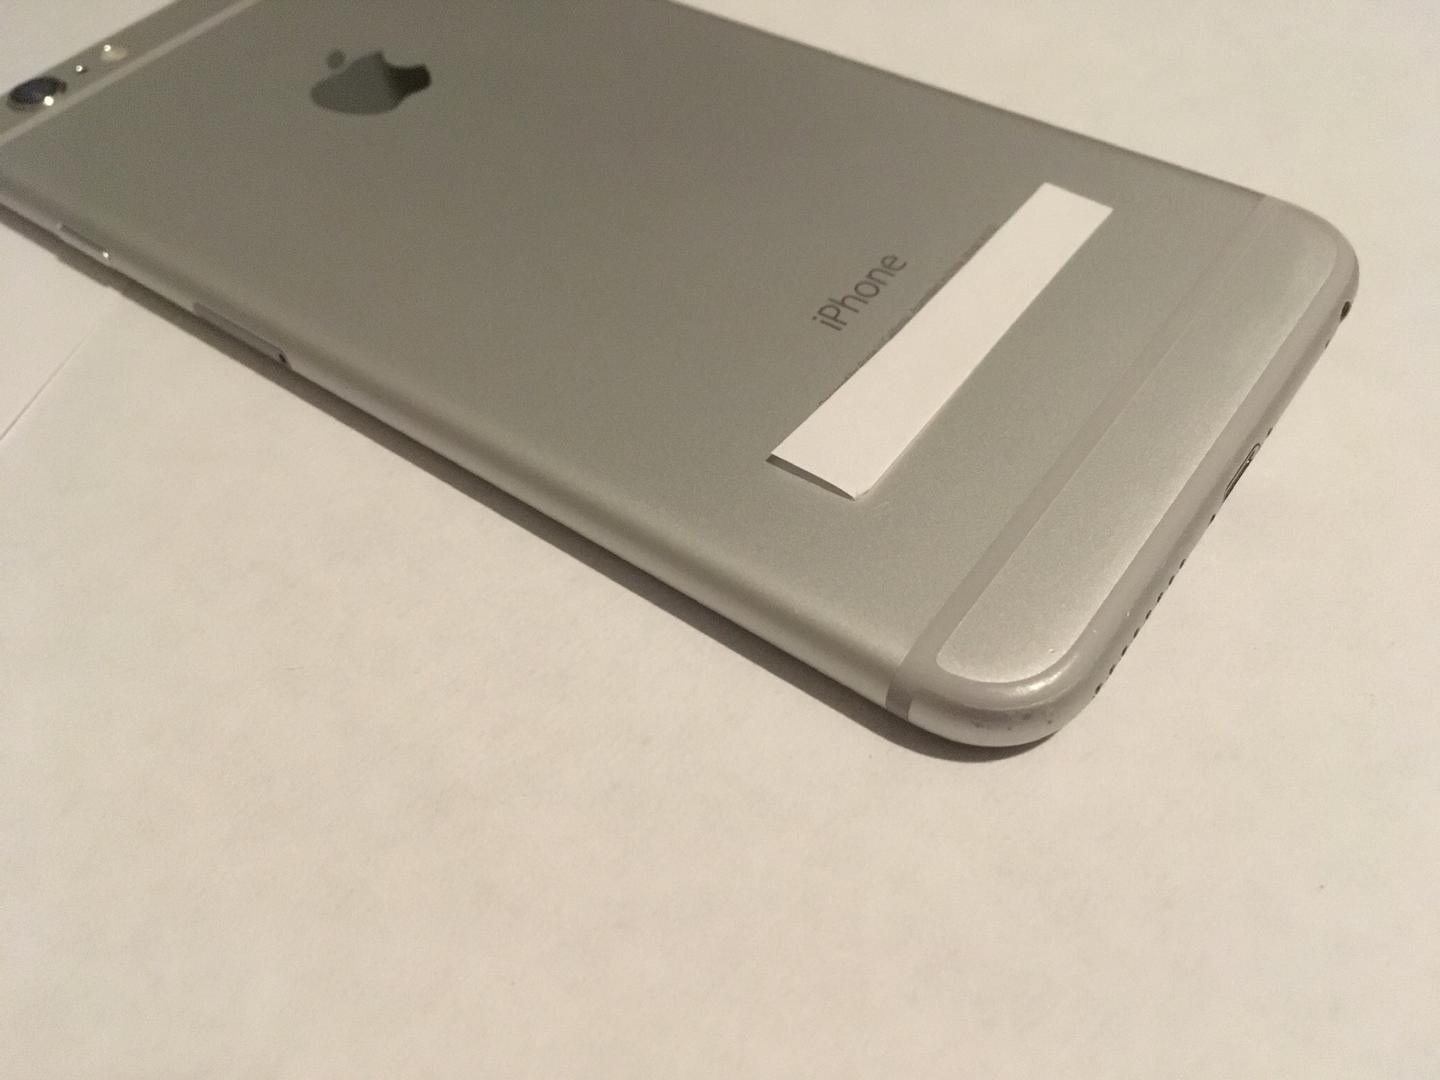 Apple iPhone 6 Plus (AT&T) [A1522] - Silver, 16 GB